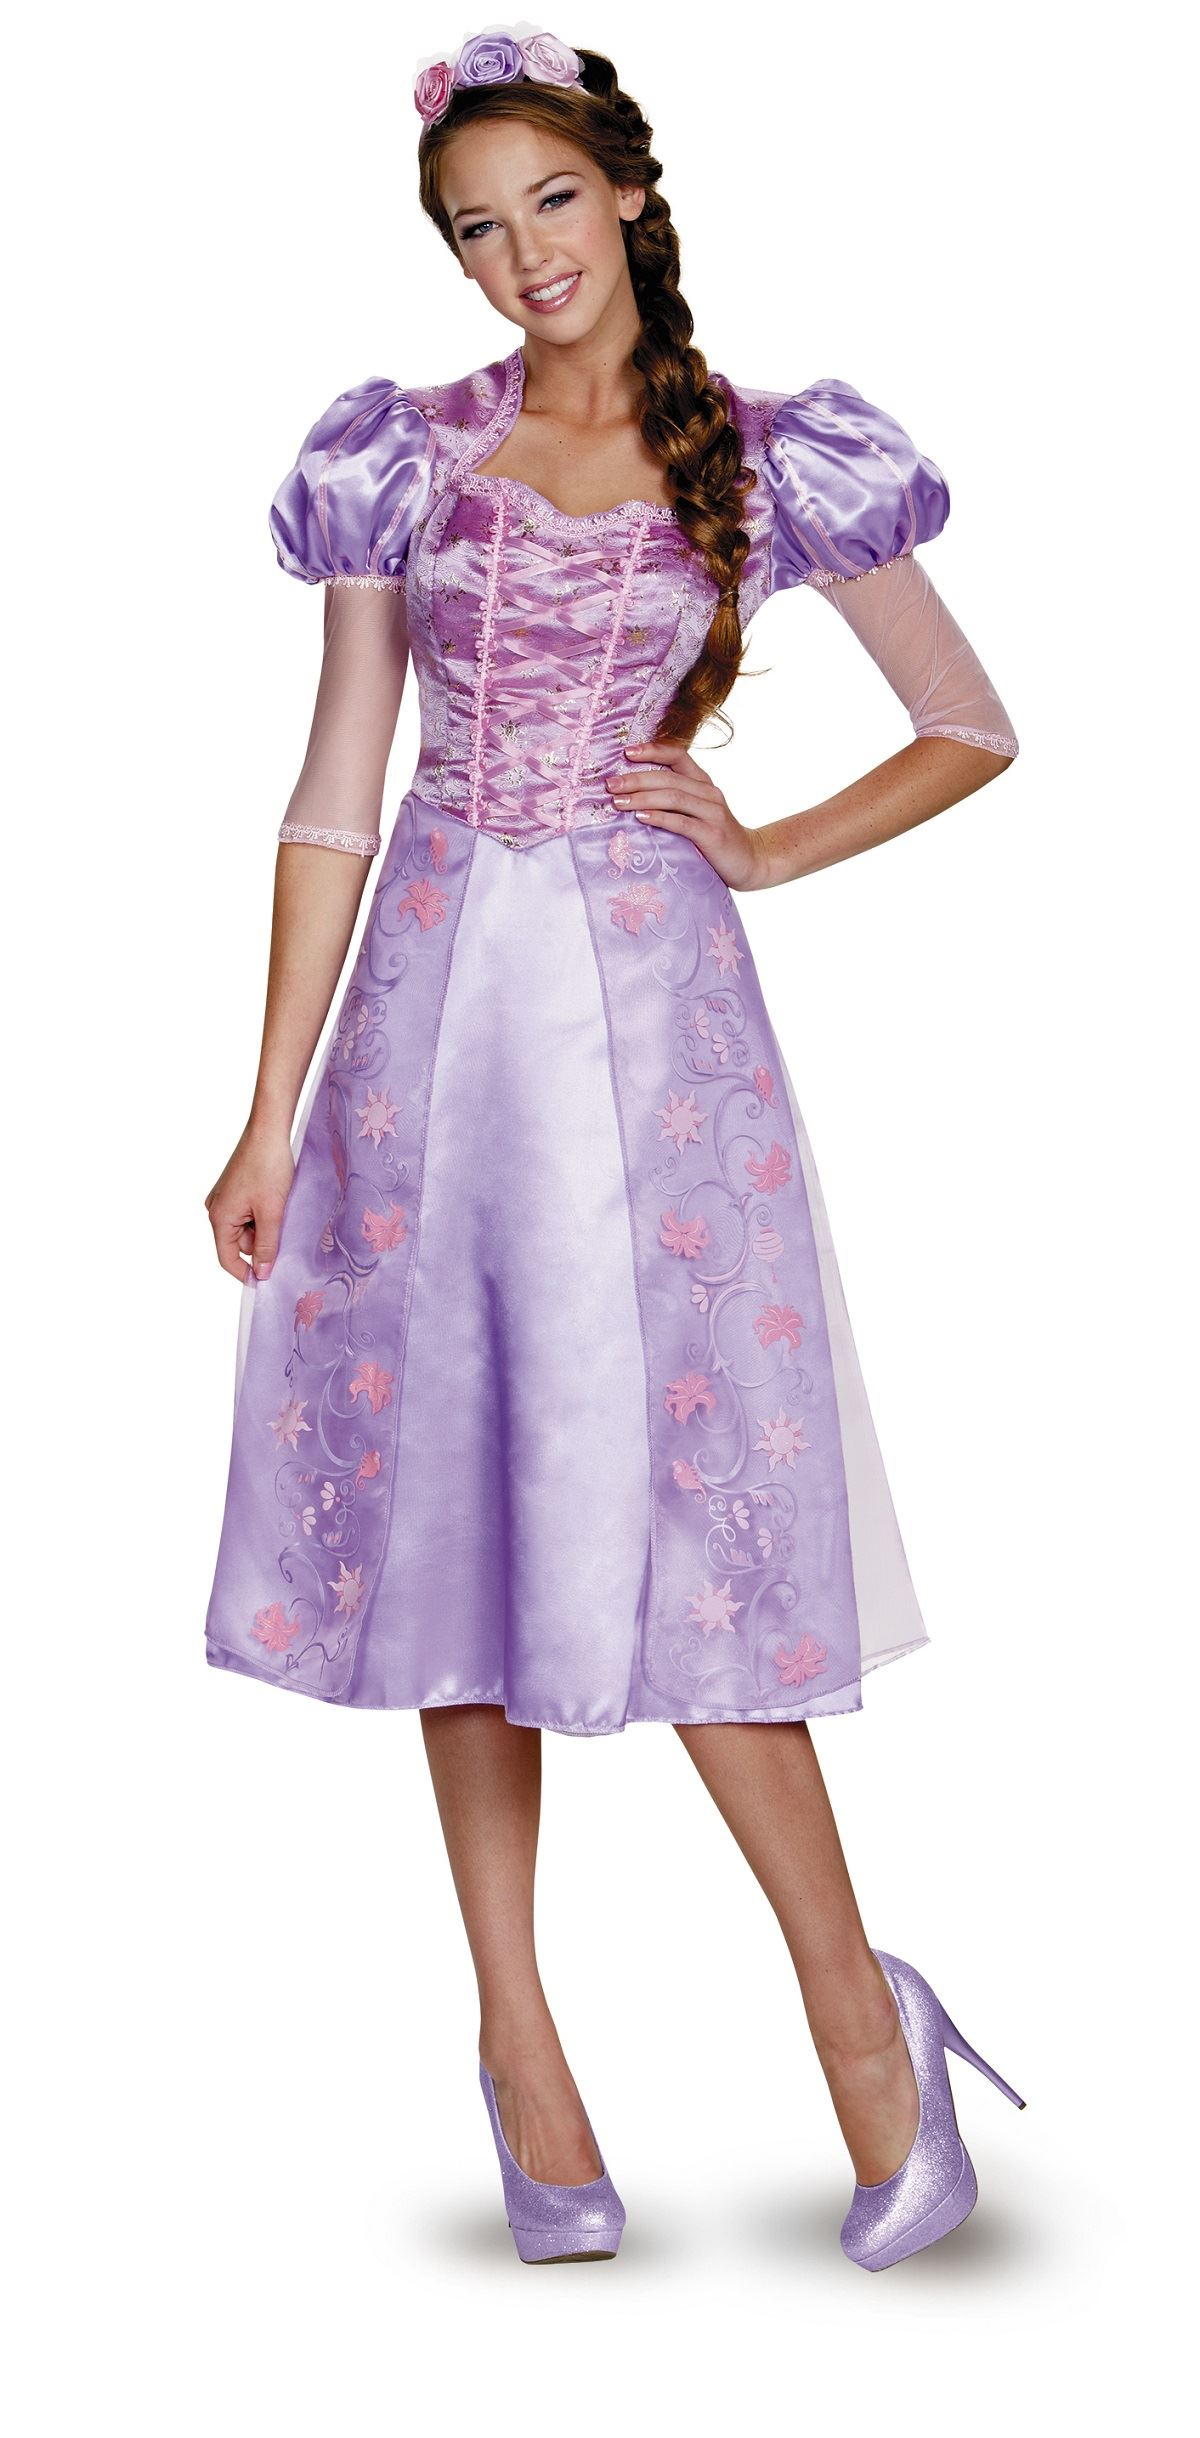 Rapunzel Disney Princess Woman Costume  sc 1 st  The Costume Land & Teen Fairy Tales Costumes Halloween Costumes | Buy Teen Fairy Tales ...